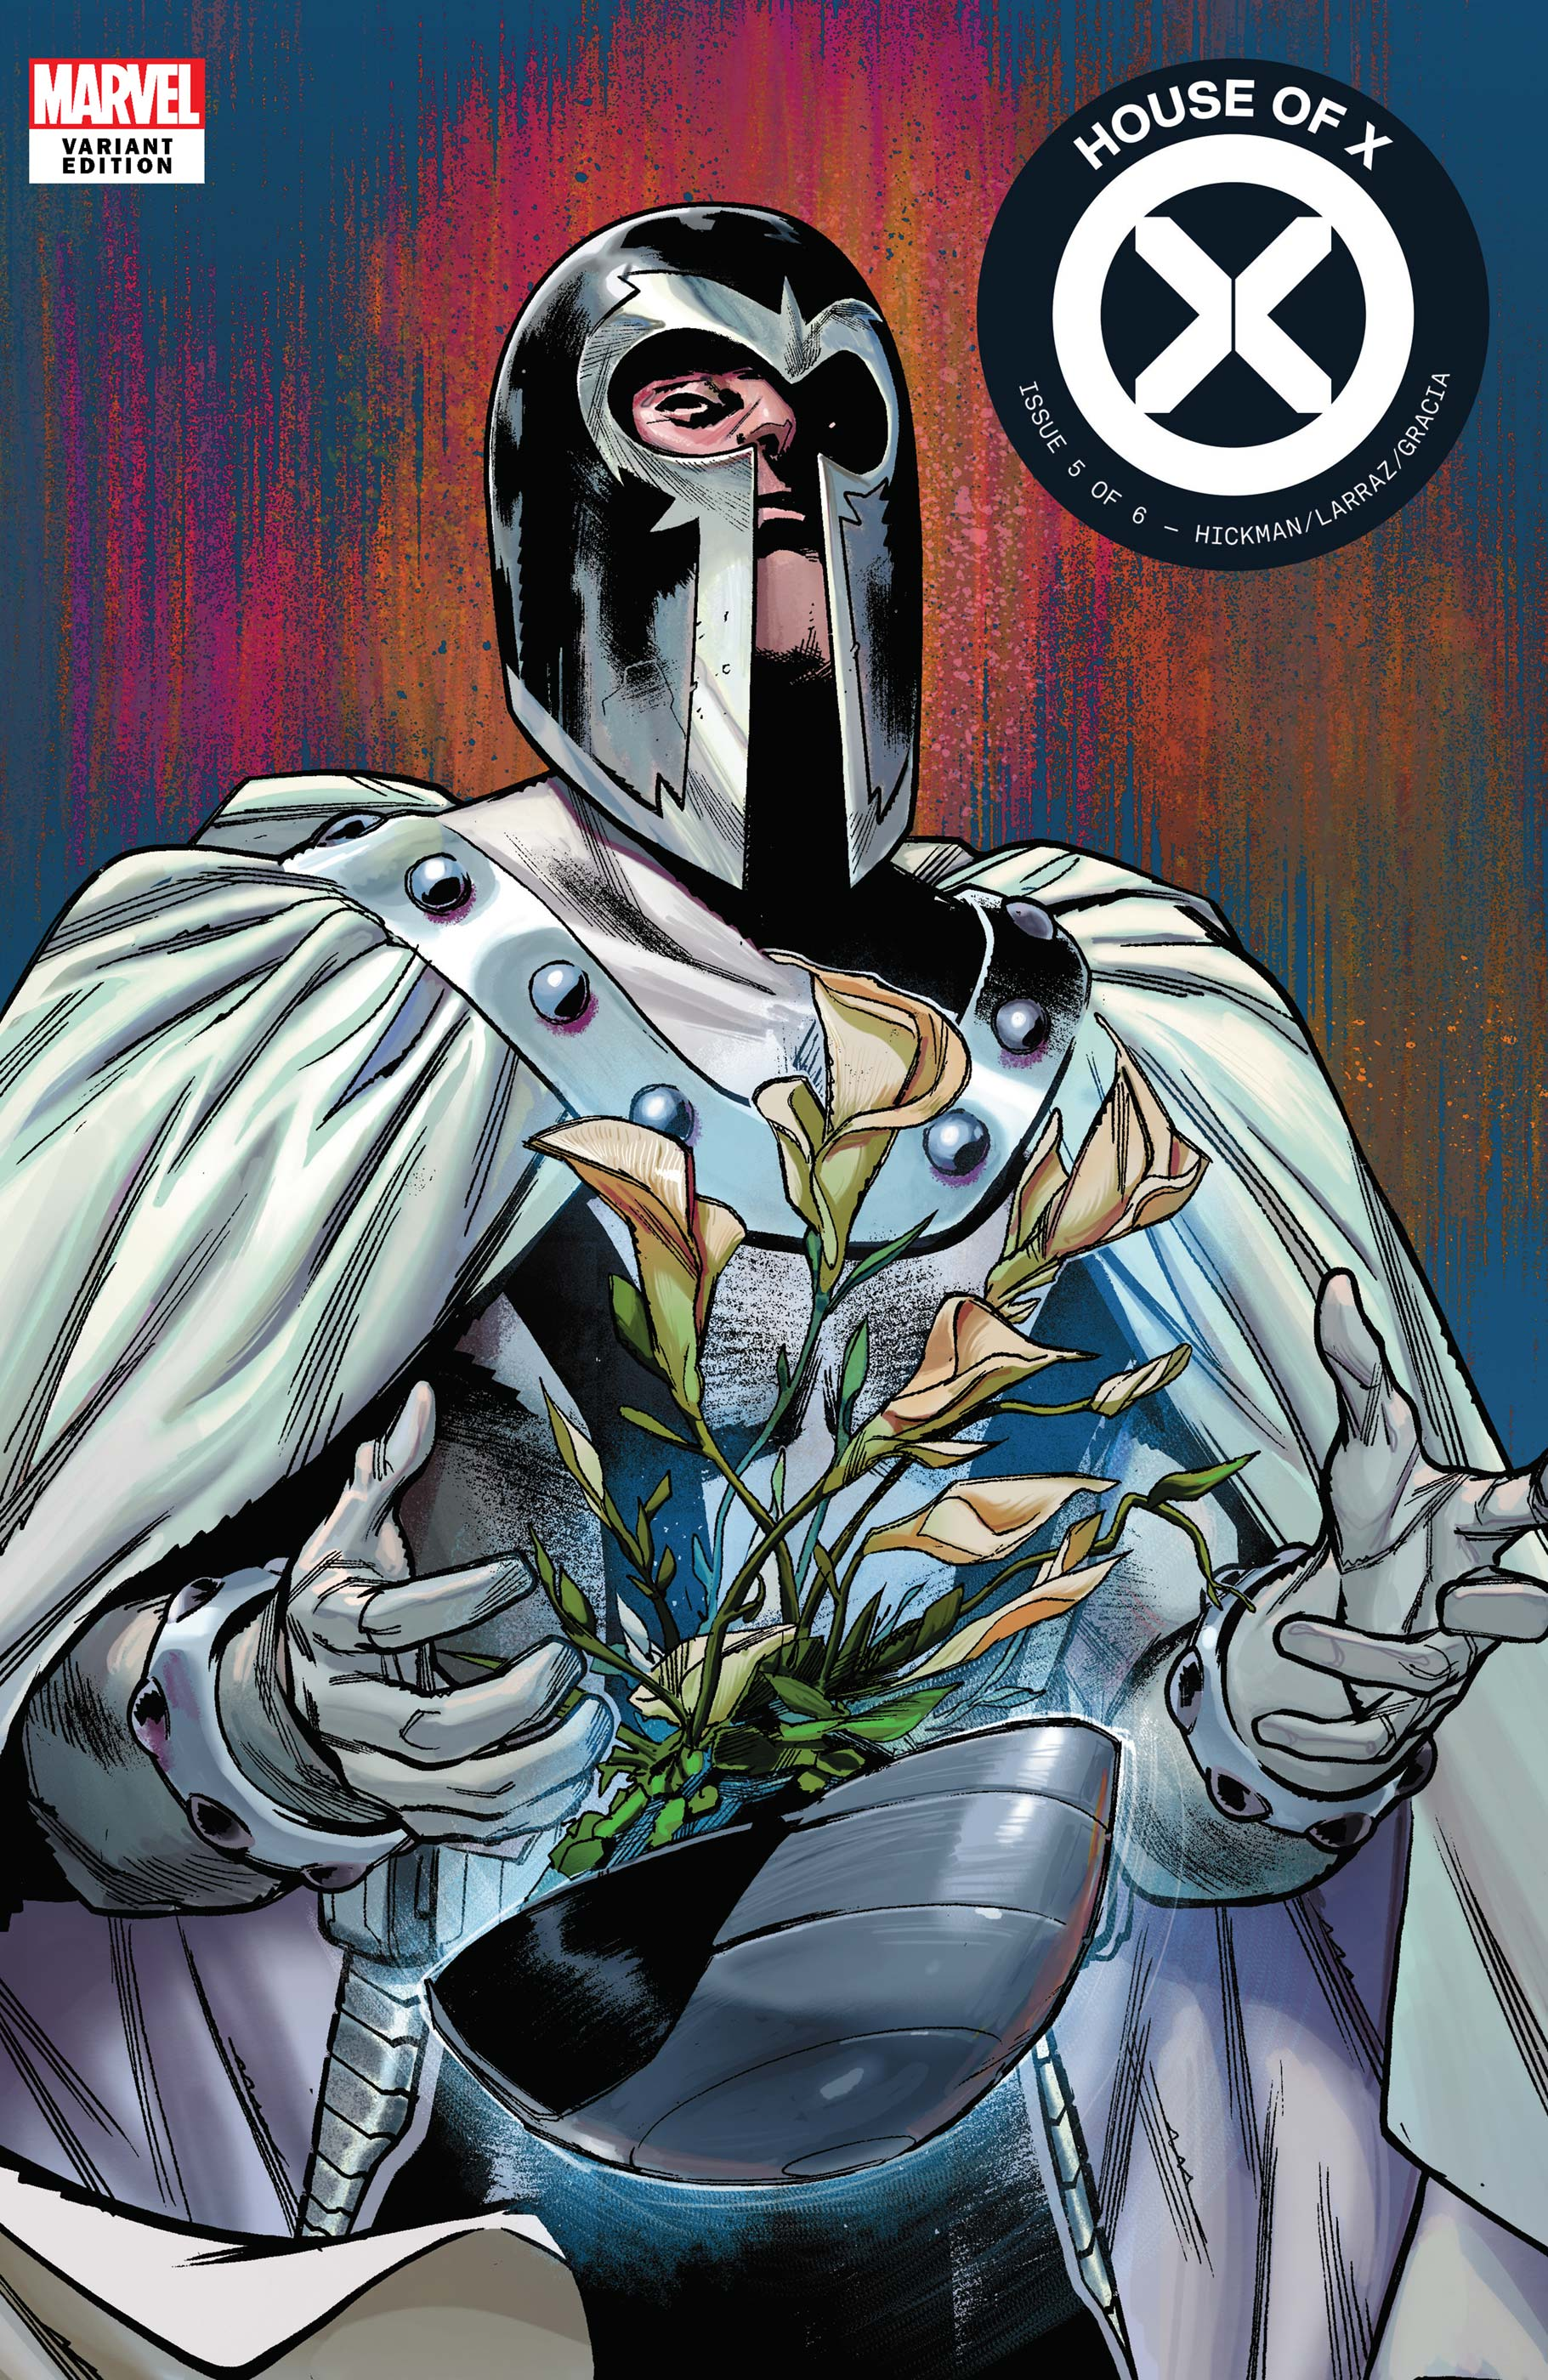 The cover art of a House of X comic shows a robed character in a keyhole helmet.